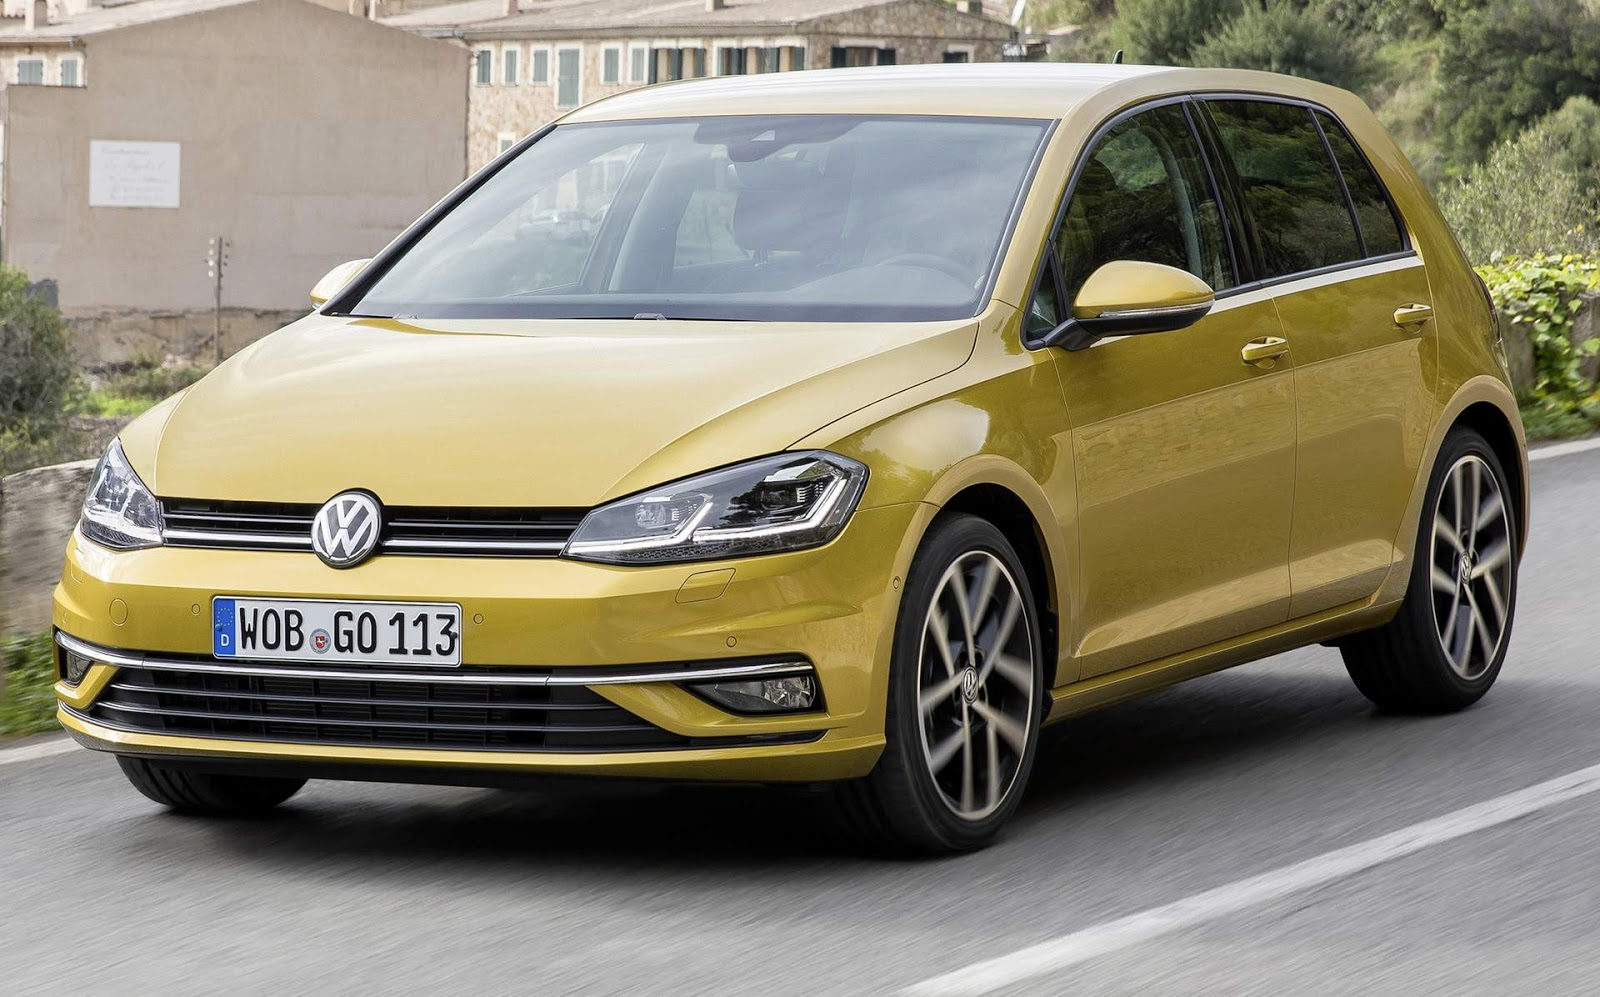 Vw golf 8 pictures